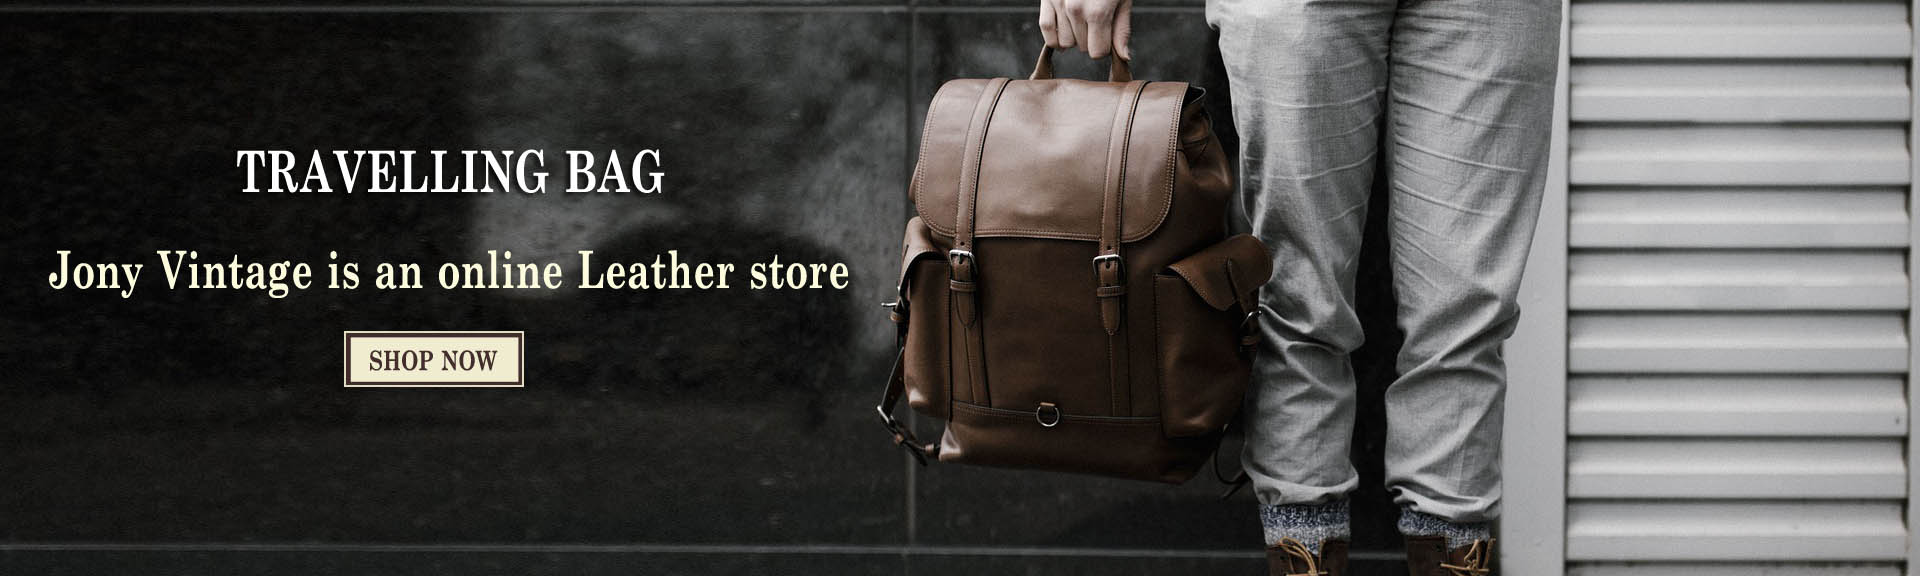 975cf88171 We are the online suppliers of variety of leather Bags. We are manufacture  of handmade leather bags.